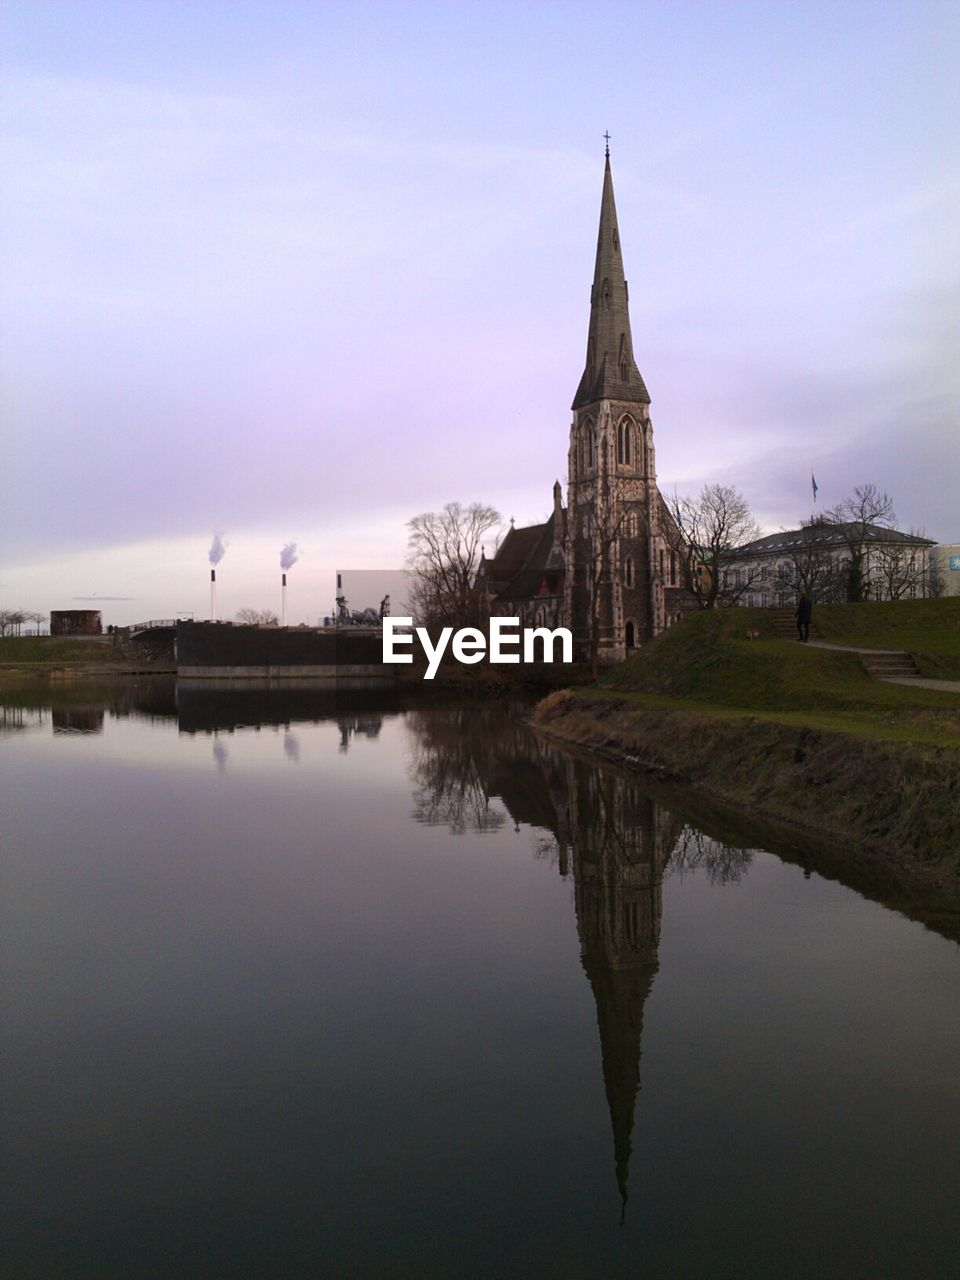 Reflection Of Old Church On Calm Lake Against Sky